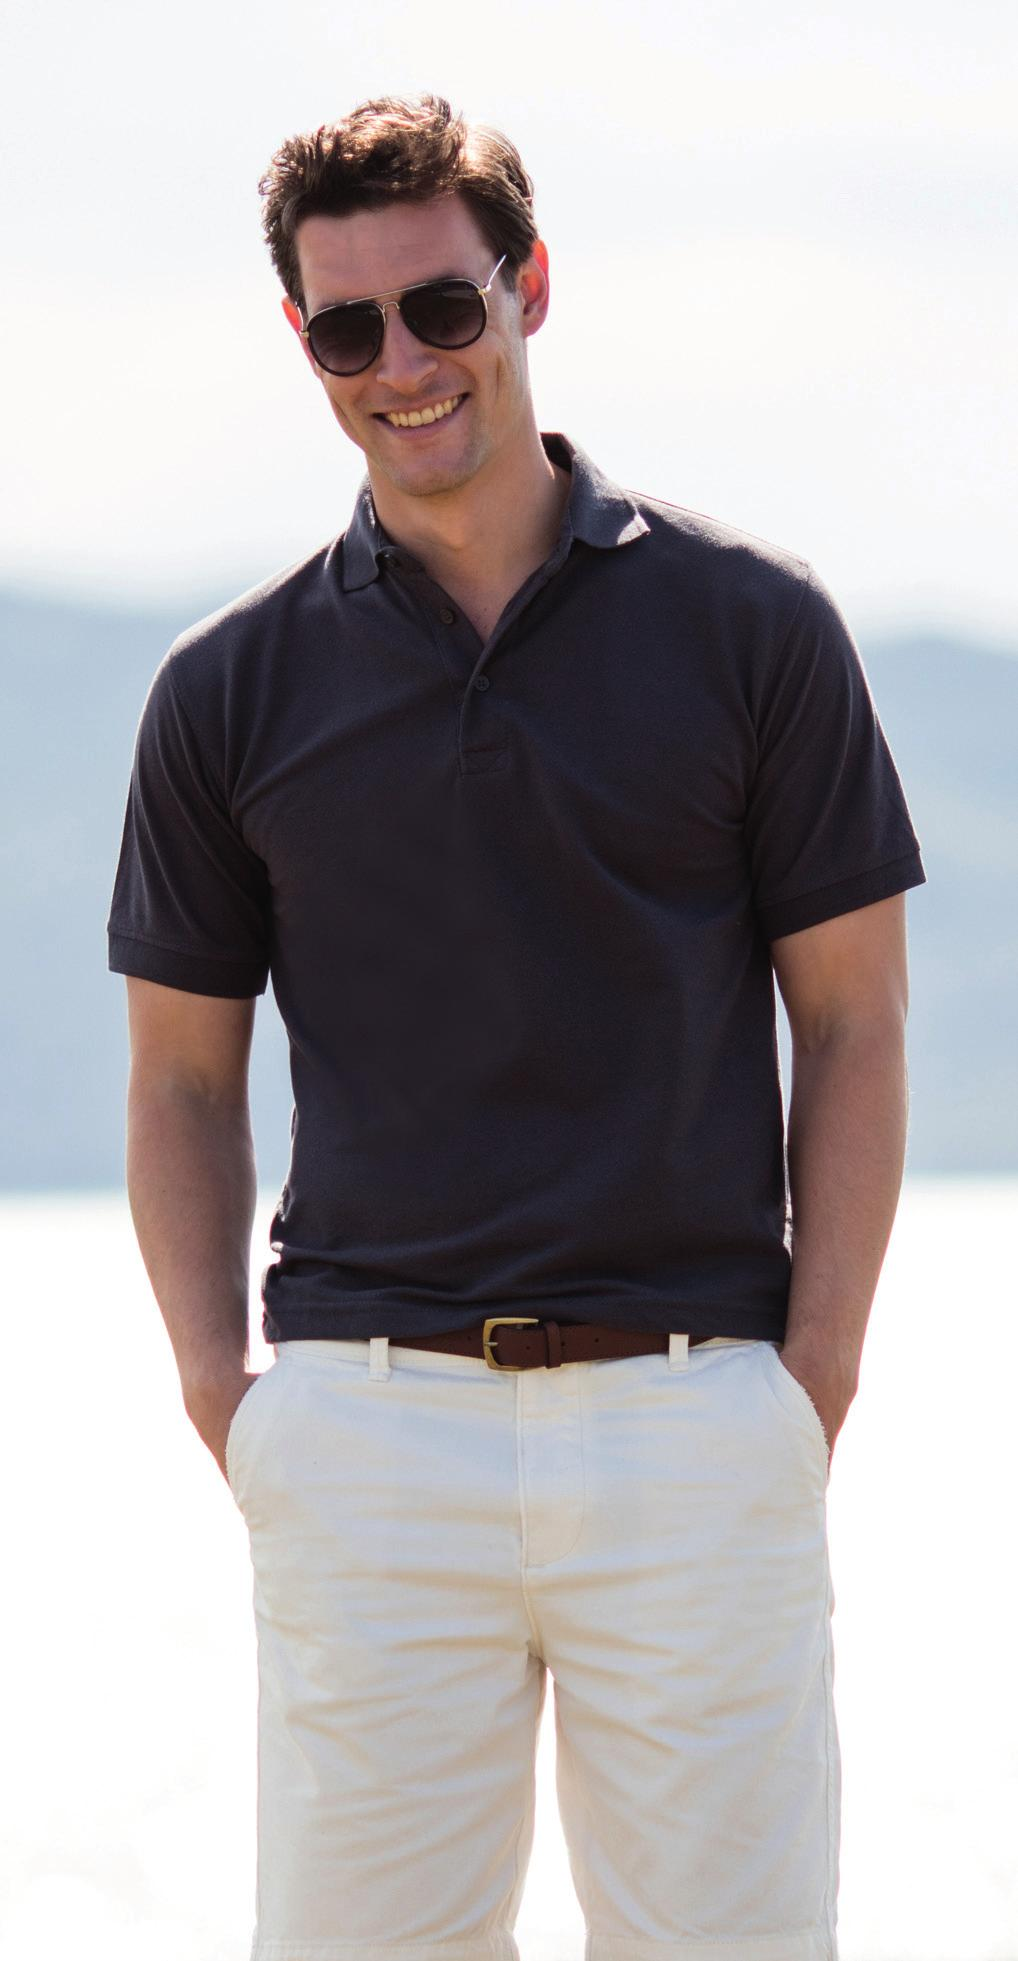 65/35 CLASSIC PIQUE POLO SHIRT H400 H401 Durable heavyweight pique. Classic 3 button placket. Dyed to match buttons.